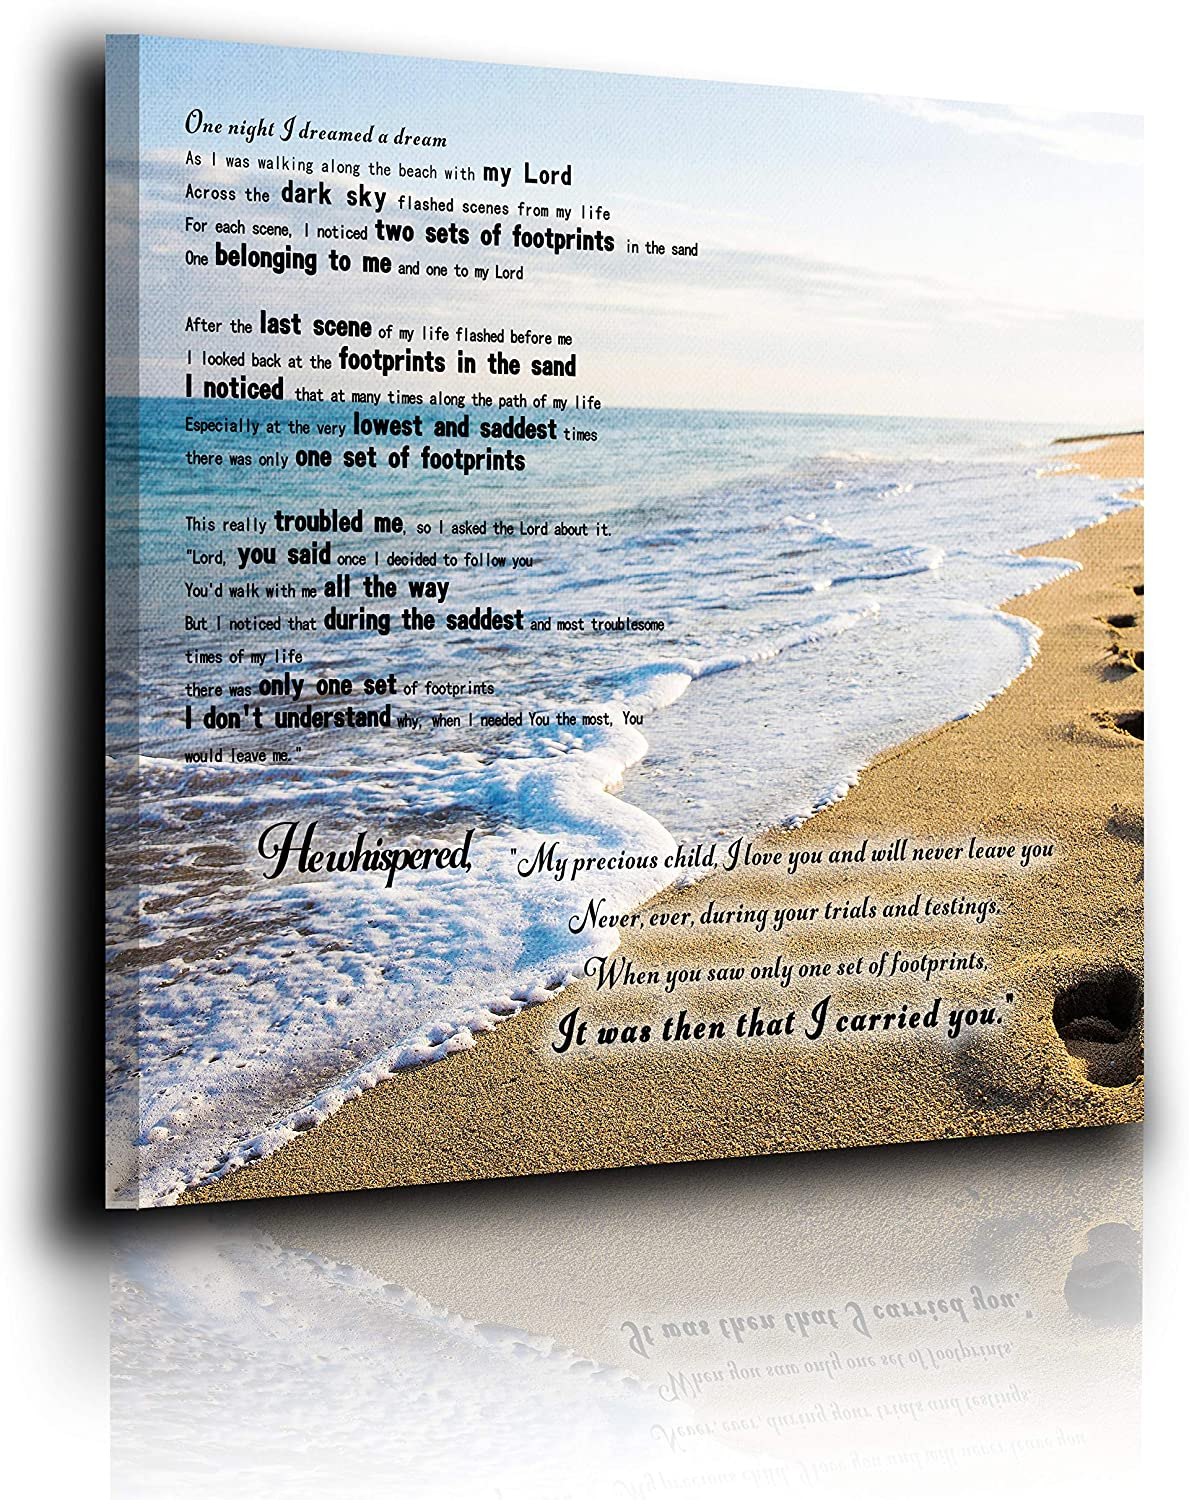 Footprints In The Sand Poem Canvas Print Art No Frame To Hang Home Decor Wall Decor, Canvas Print Wall Art Oil Painting Living Room Dining Room Bedroom Home Office Modern Wall Decor 12